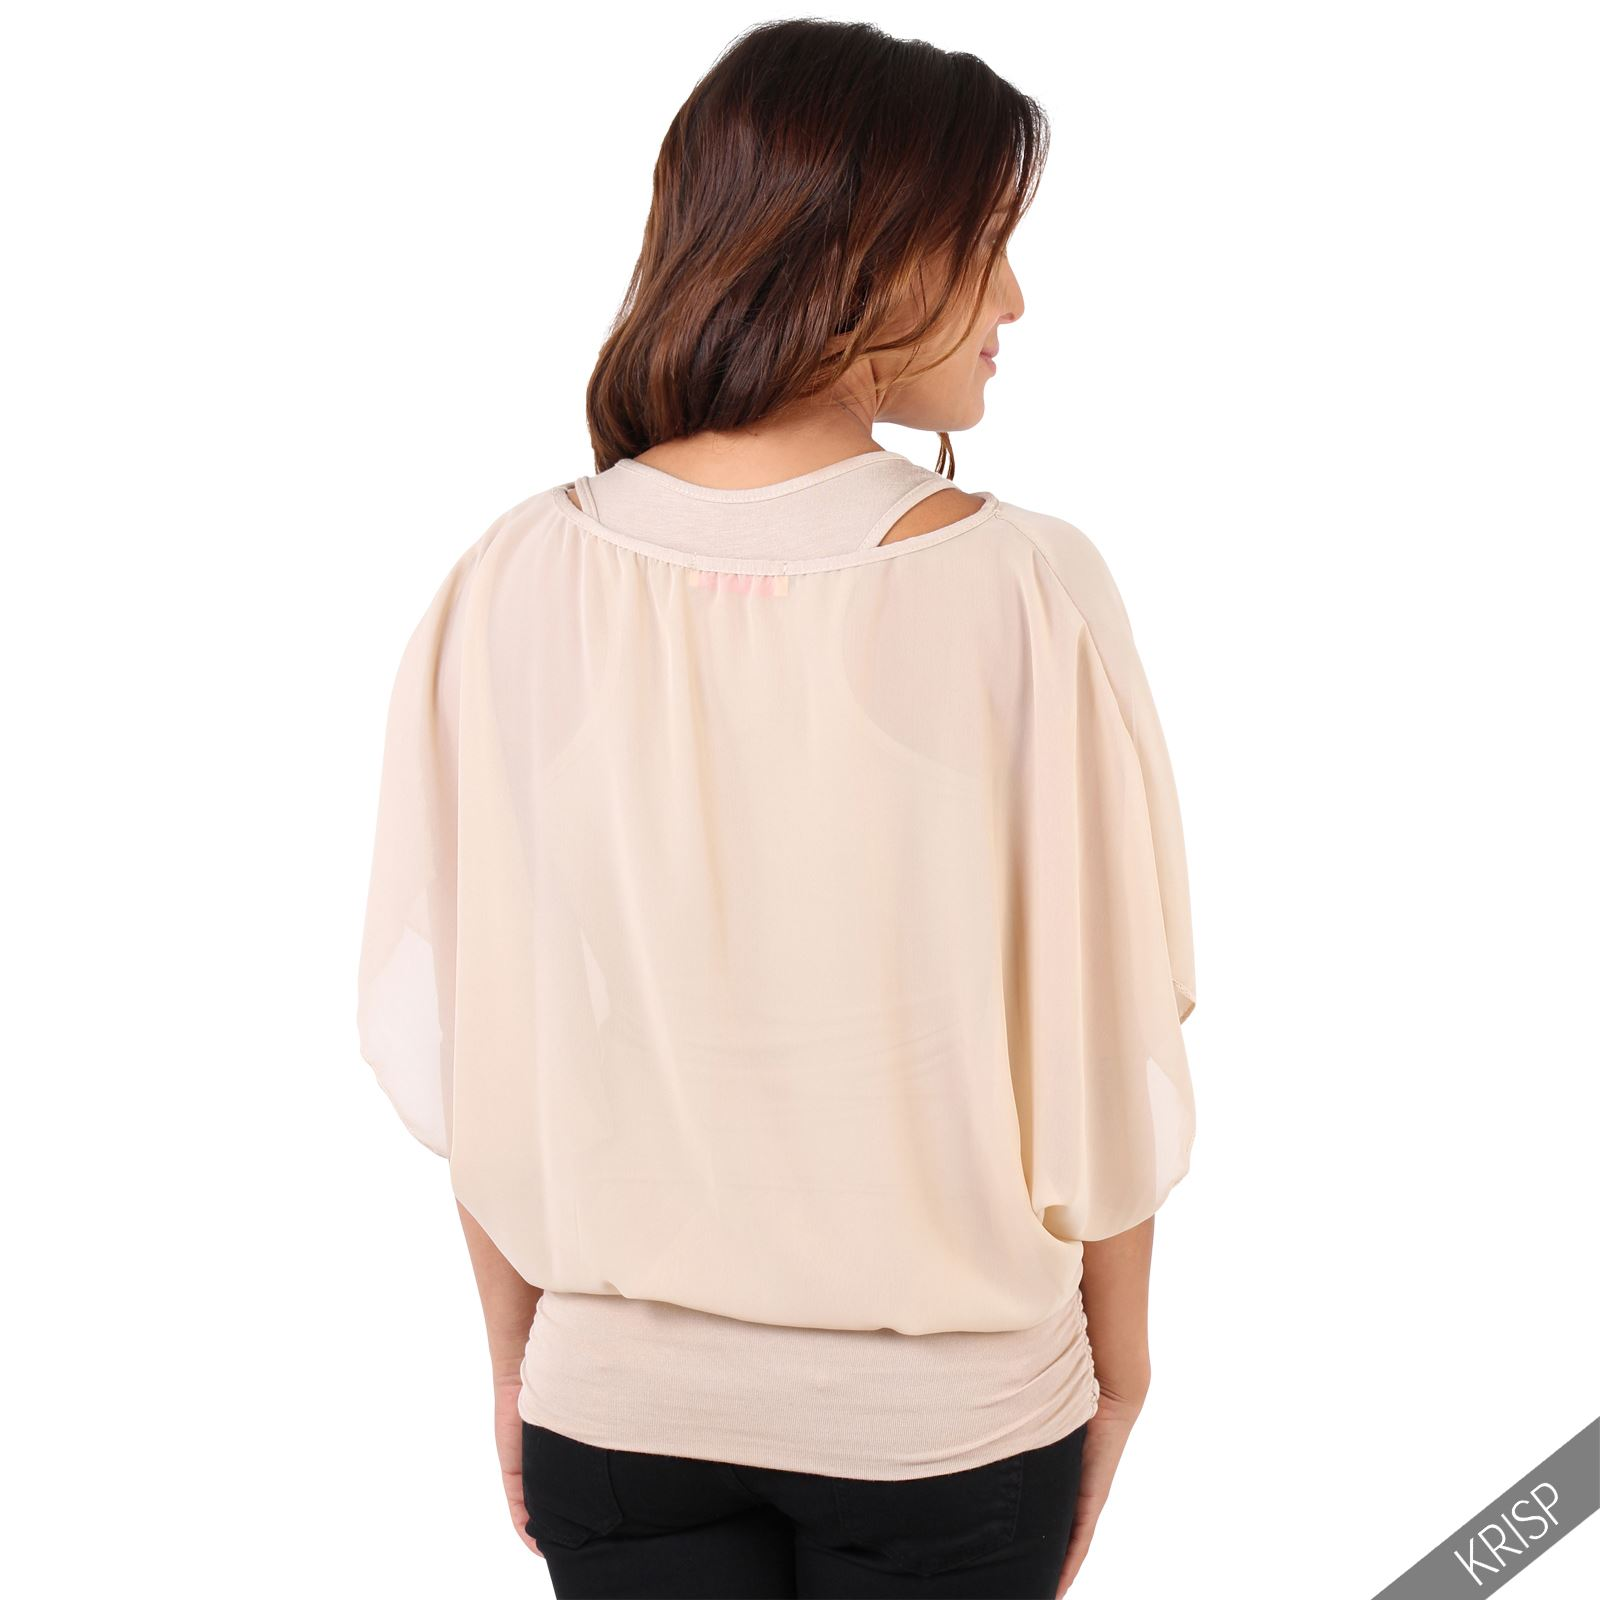 Womens-Scoop-Neck-Blouse-Baggy-Batwing-T-Shirt-Top-Ladies-Oversized-Chiffon-2in1 thumbnail 29